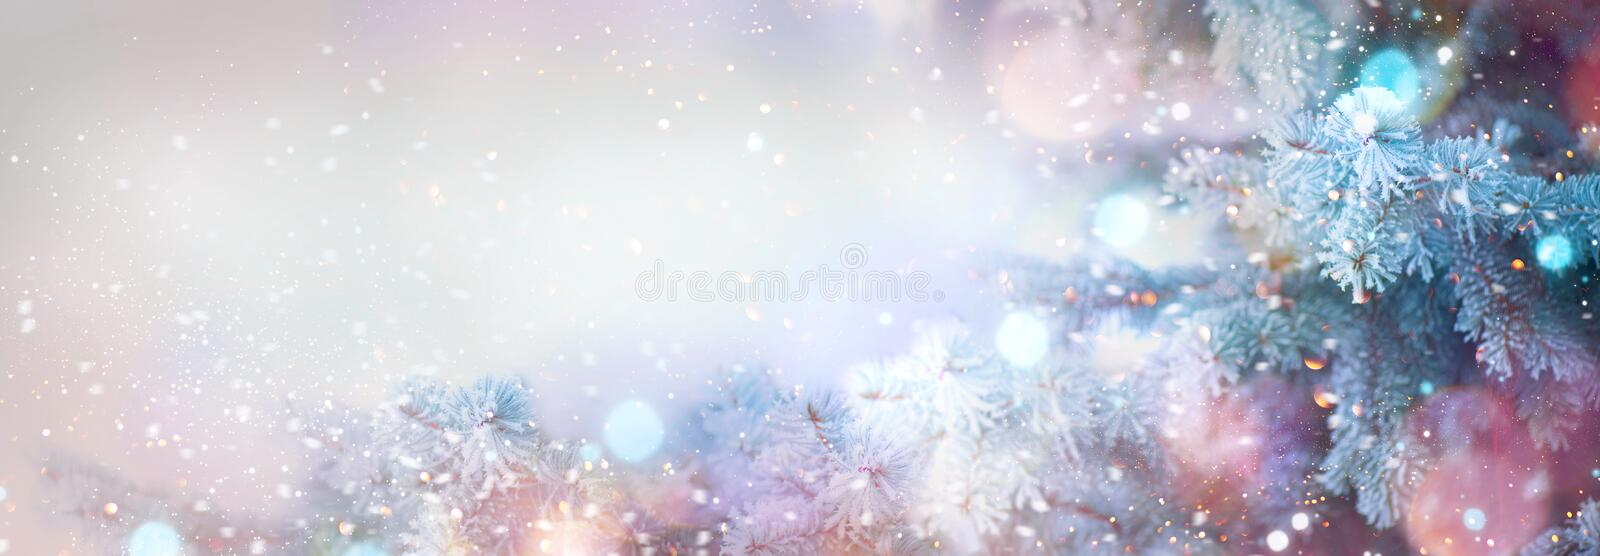 Winter tree holiday snow background stock photos